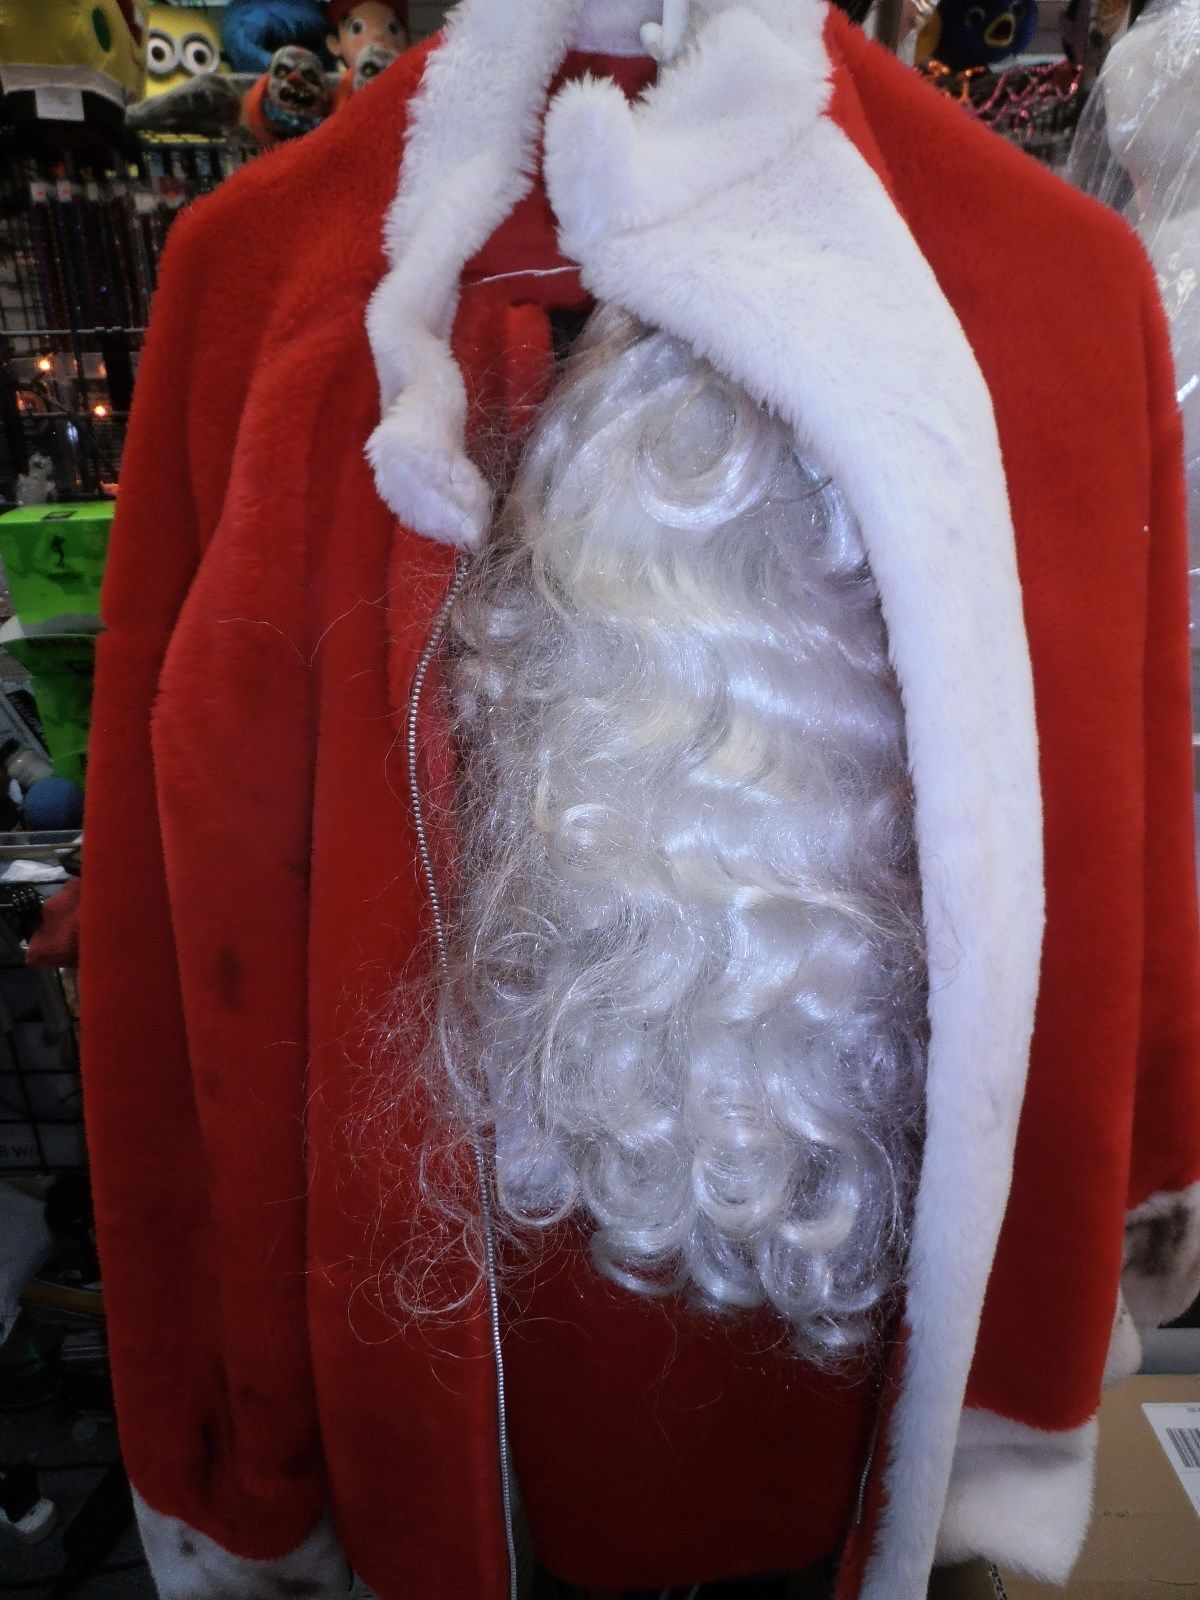 Bad Santa Suit Costume Outfit Santa Claus Halloween First Place Winner Large Halloween Skeletons Skull Decor Santa Suits